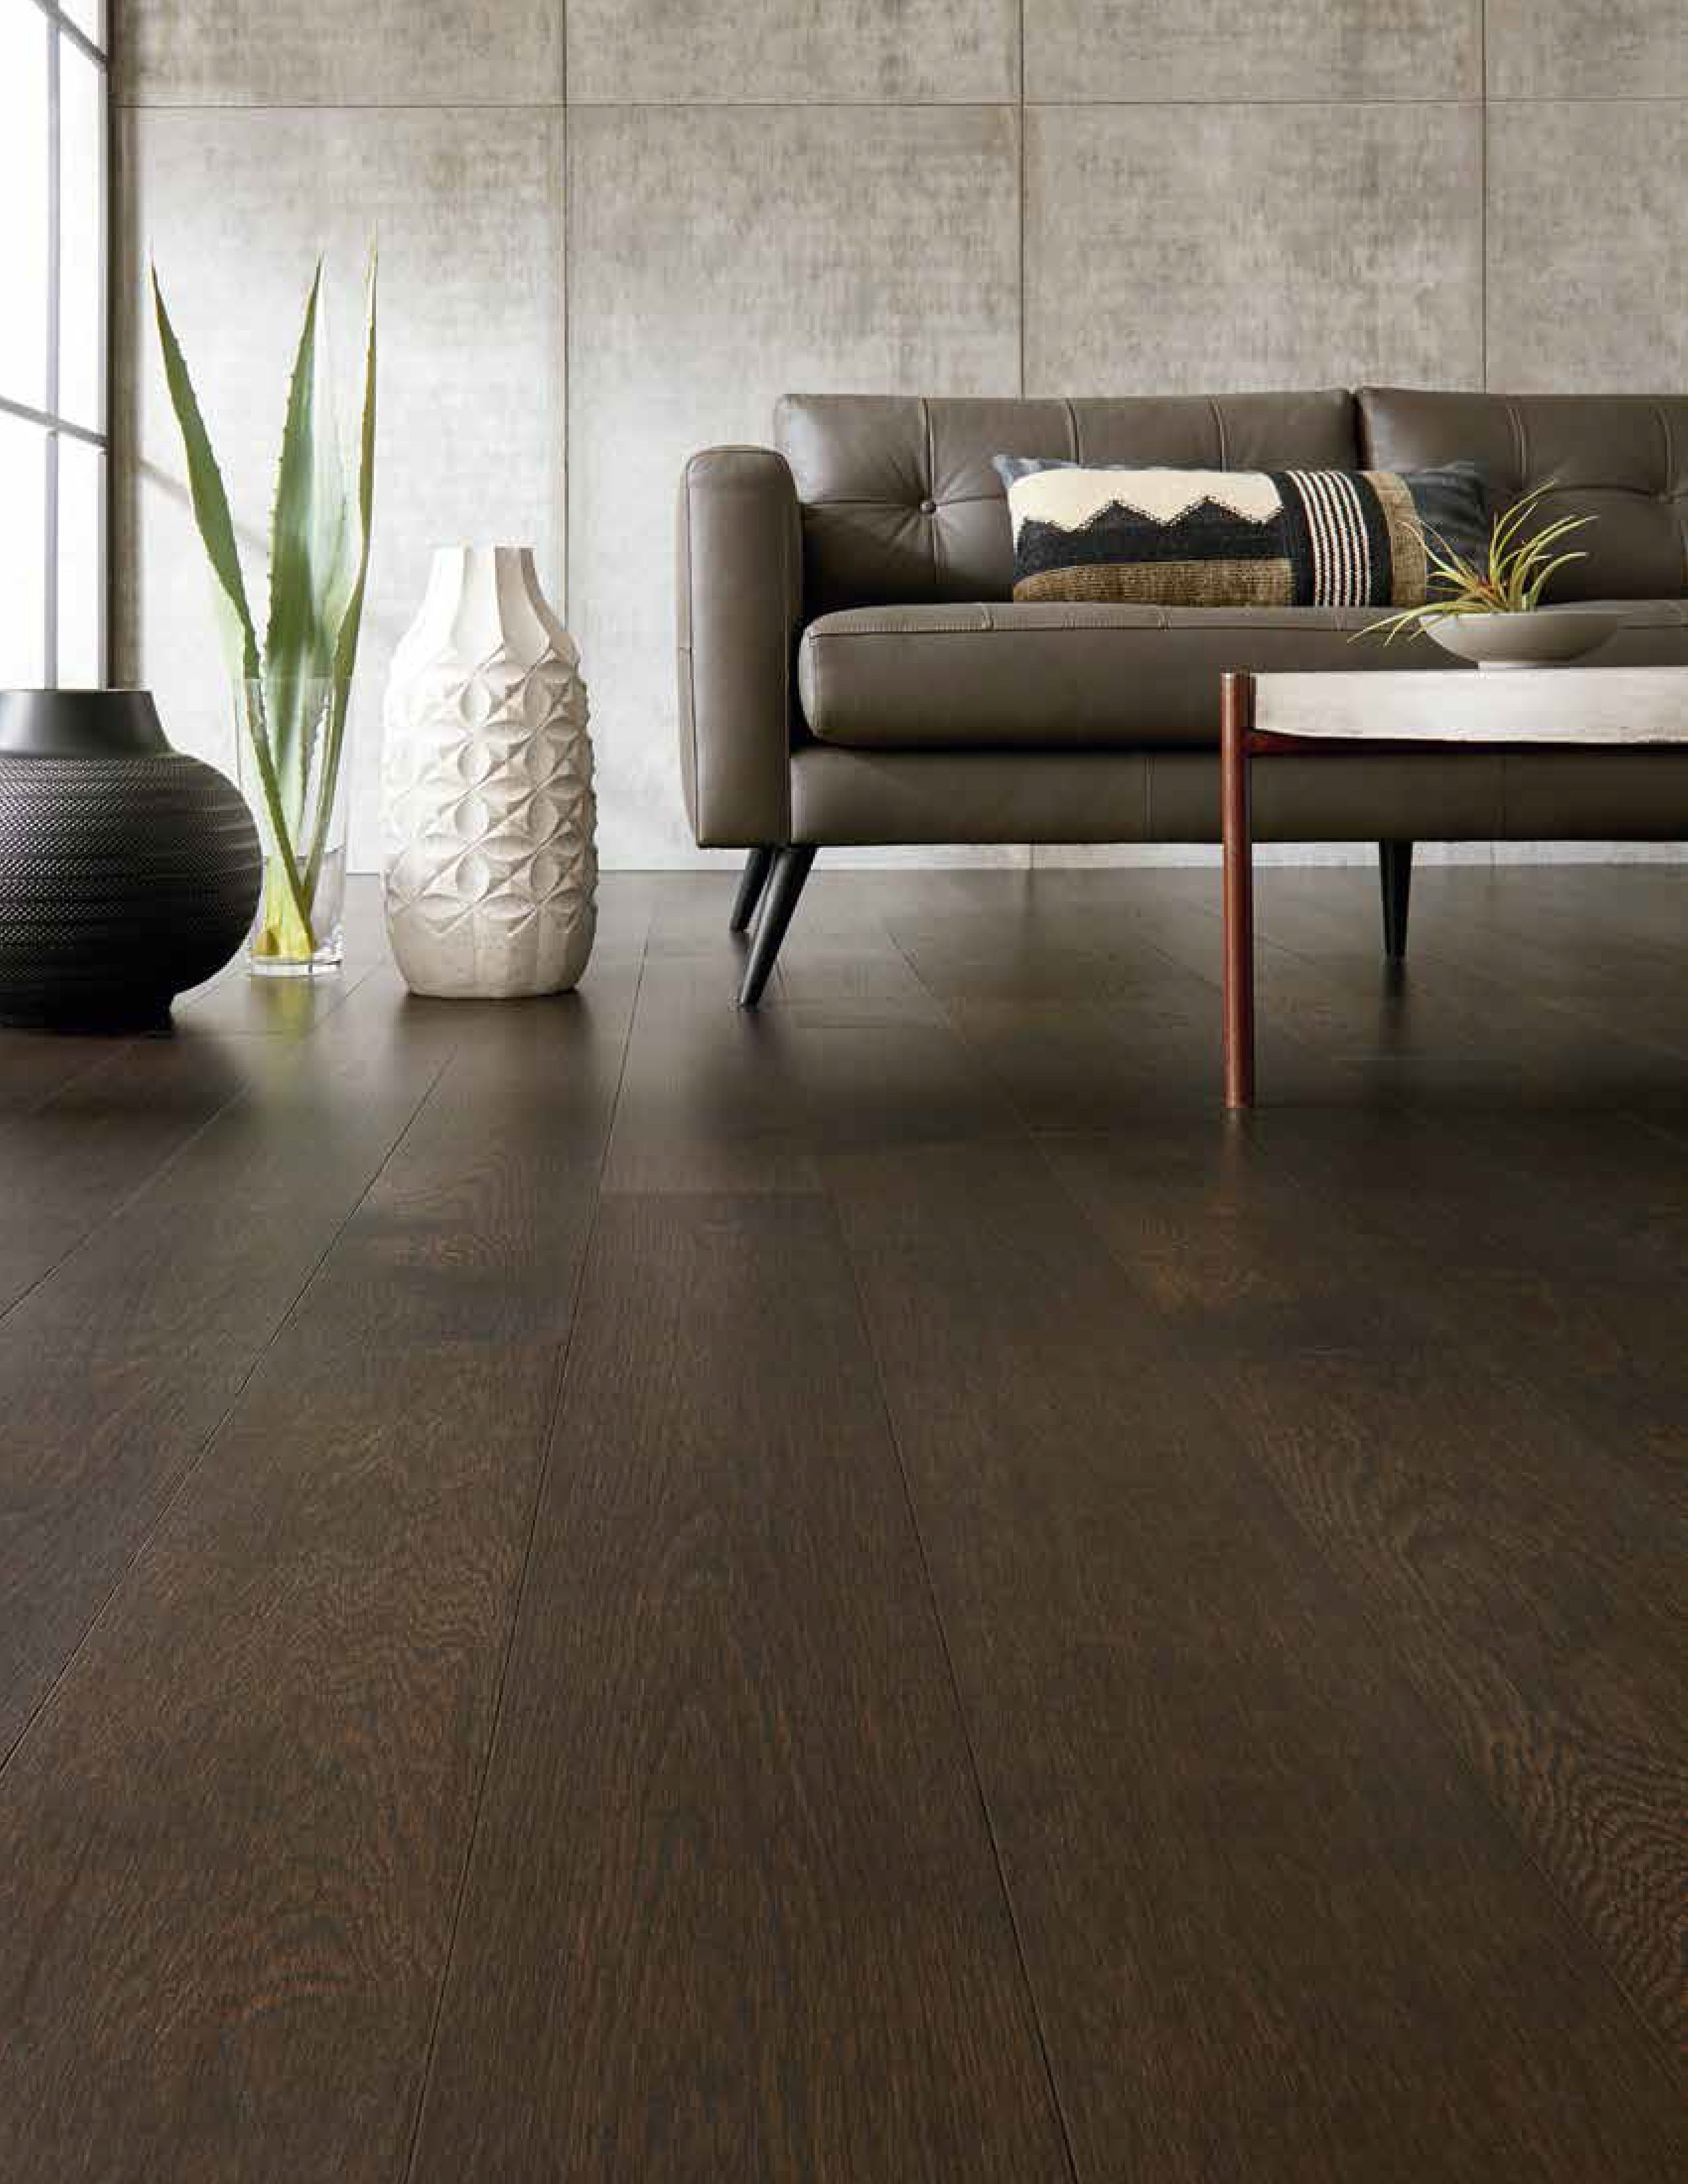 Natural Hardwood Floors In Living Rooms Are Beautiful Long Lasting And Easy To Clean G Living Room Design Inspiration Natural Wood Flooring Hardwood Floors